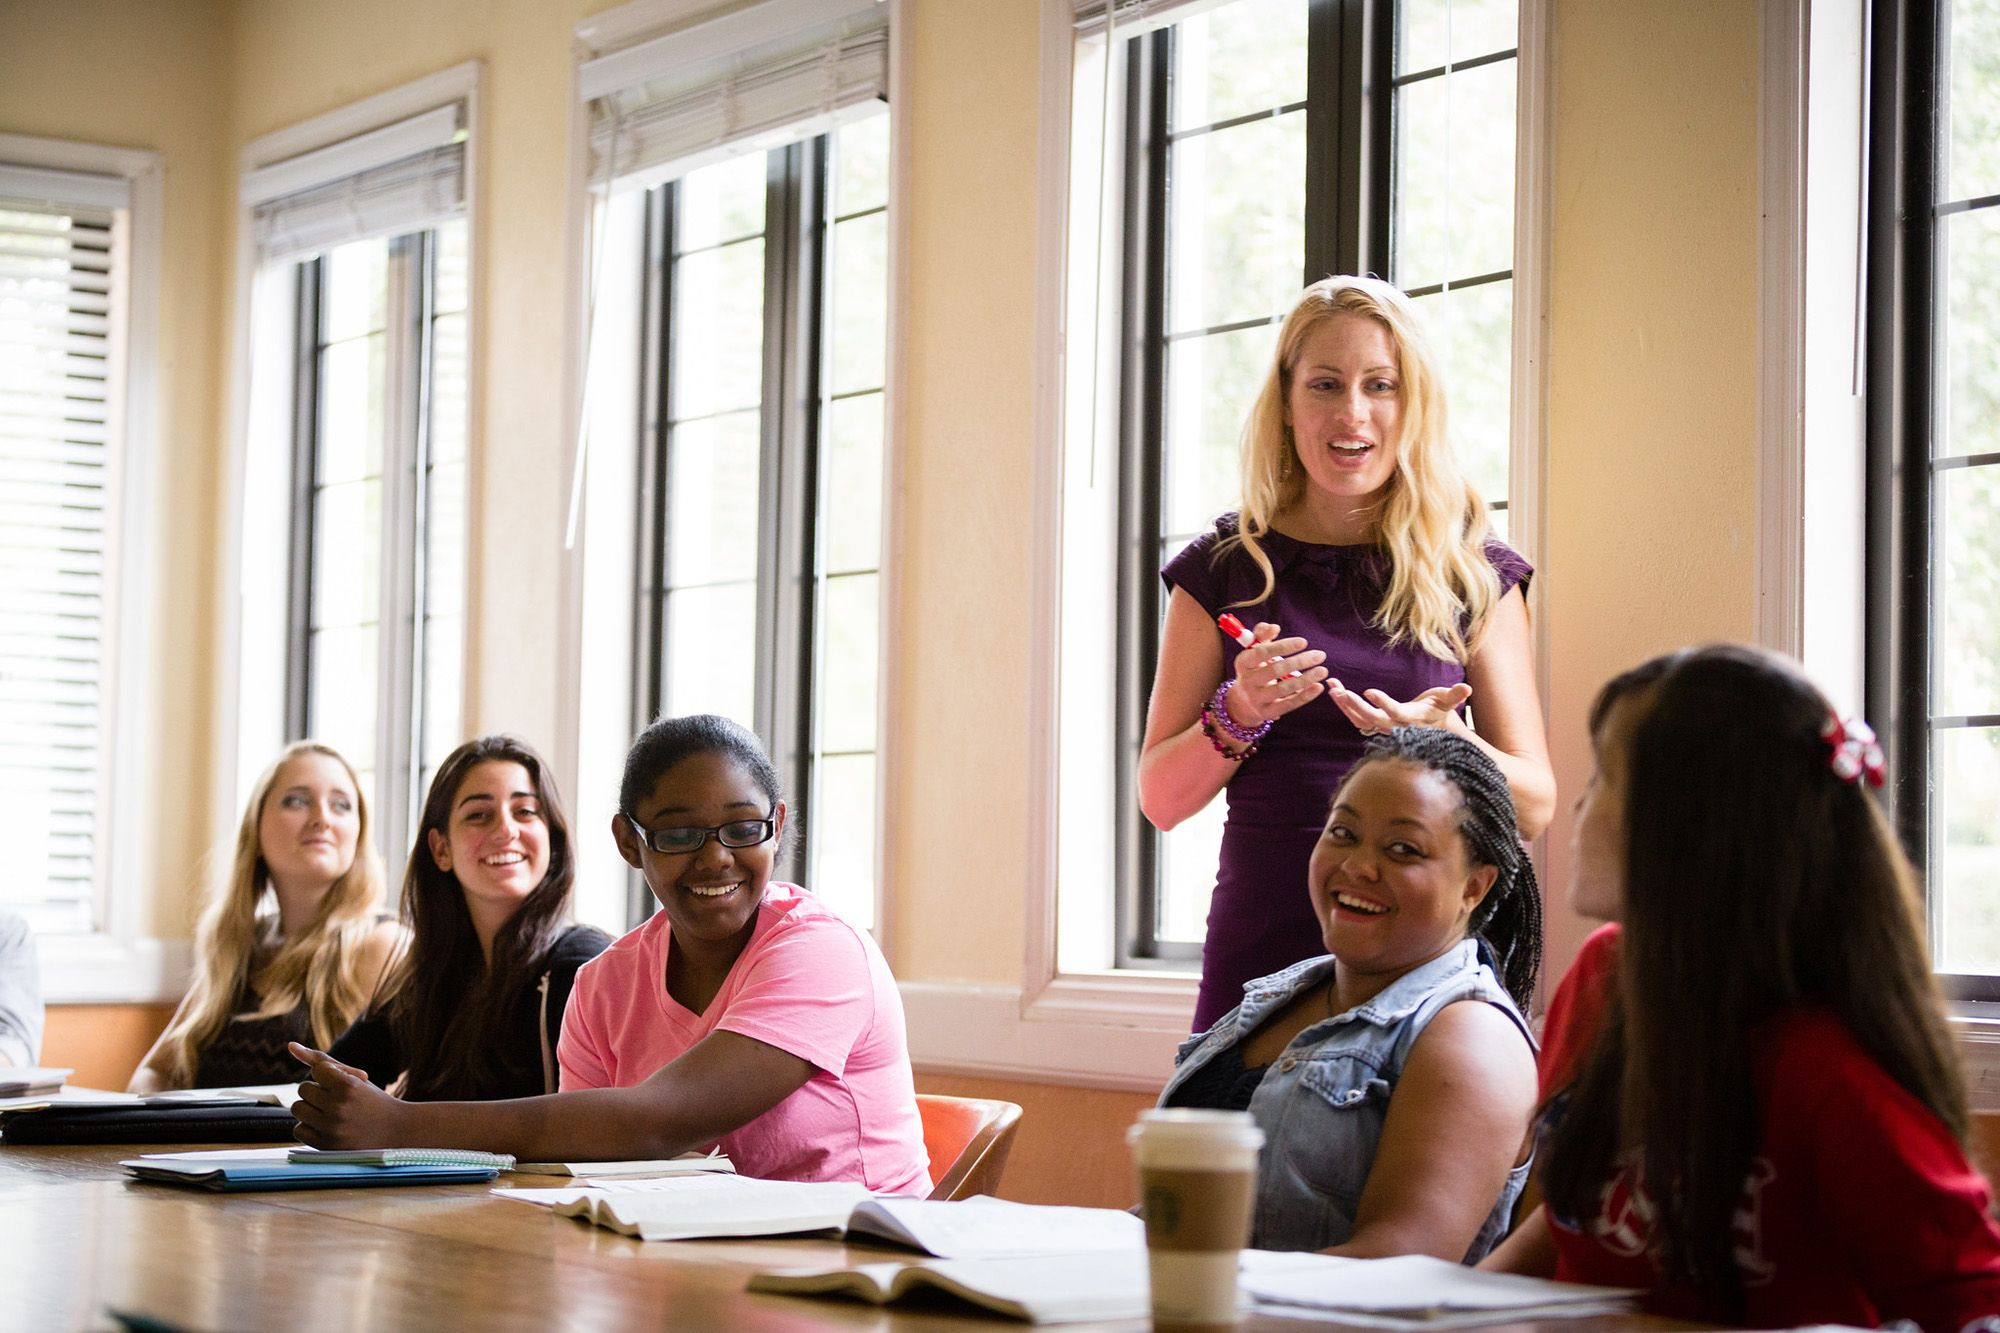 English college professor mentoring her students.